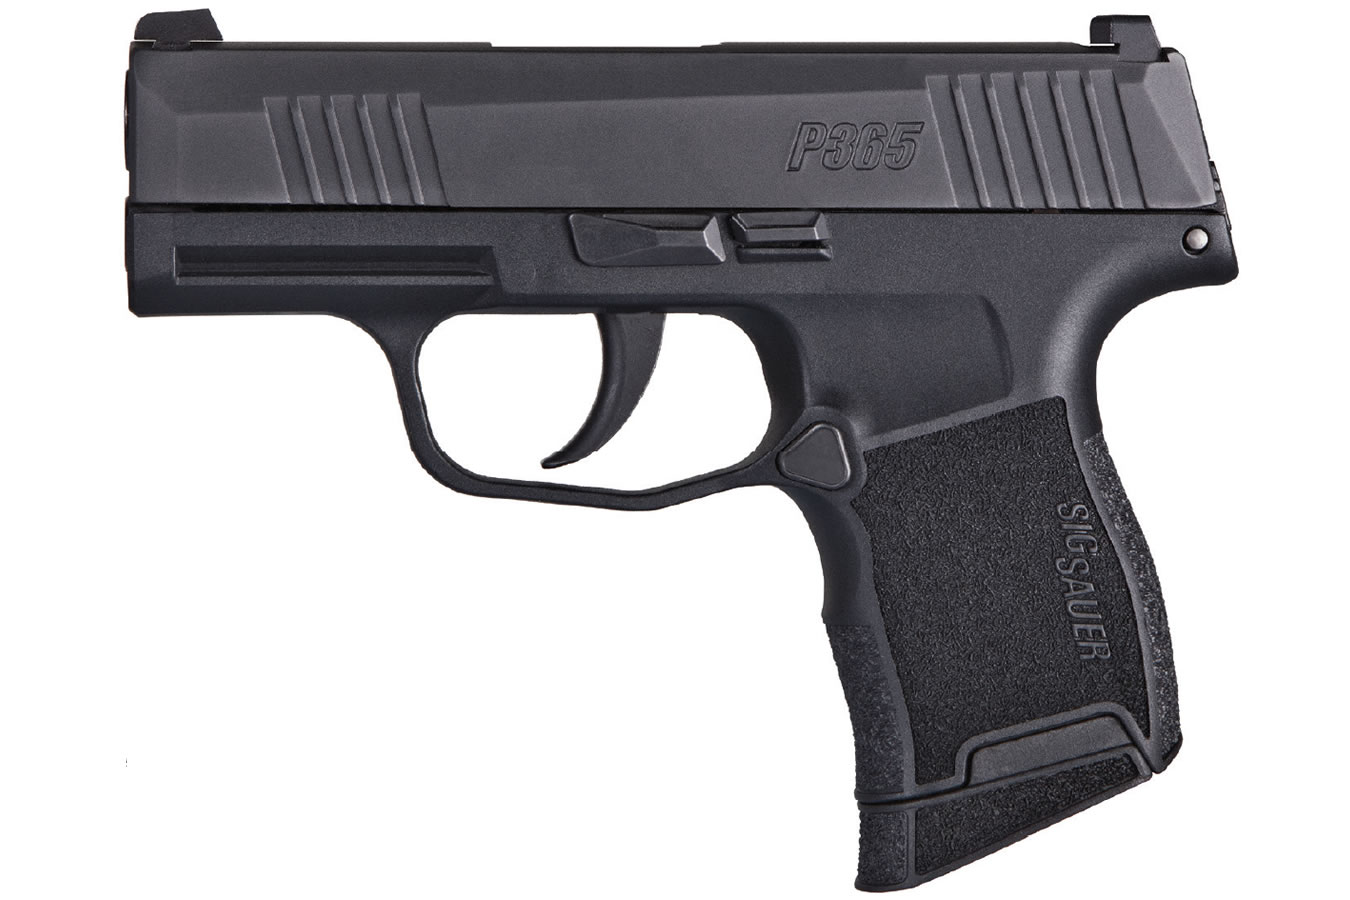 CZ, Ruger, LC9, semi-automatic, handguns, guns for self-defense, Glock, Smith & Wesson, SIG Sauer, M&P Shield, glock 26, Shield 9mm, P365, Walther, Taurus, Concealed Carry, gun sales, hybrid holsters, edc, everyday carry, best guns for, best holster, Glock 26, SIG handgun, SIG GUNS, P365 SAS